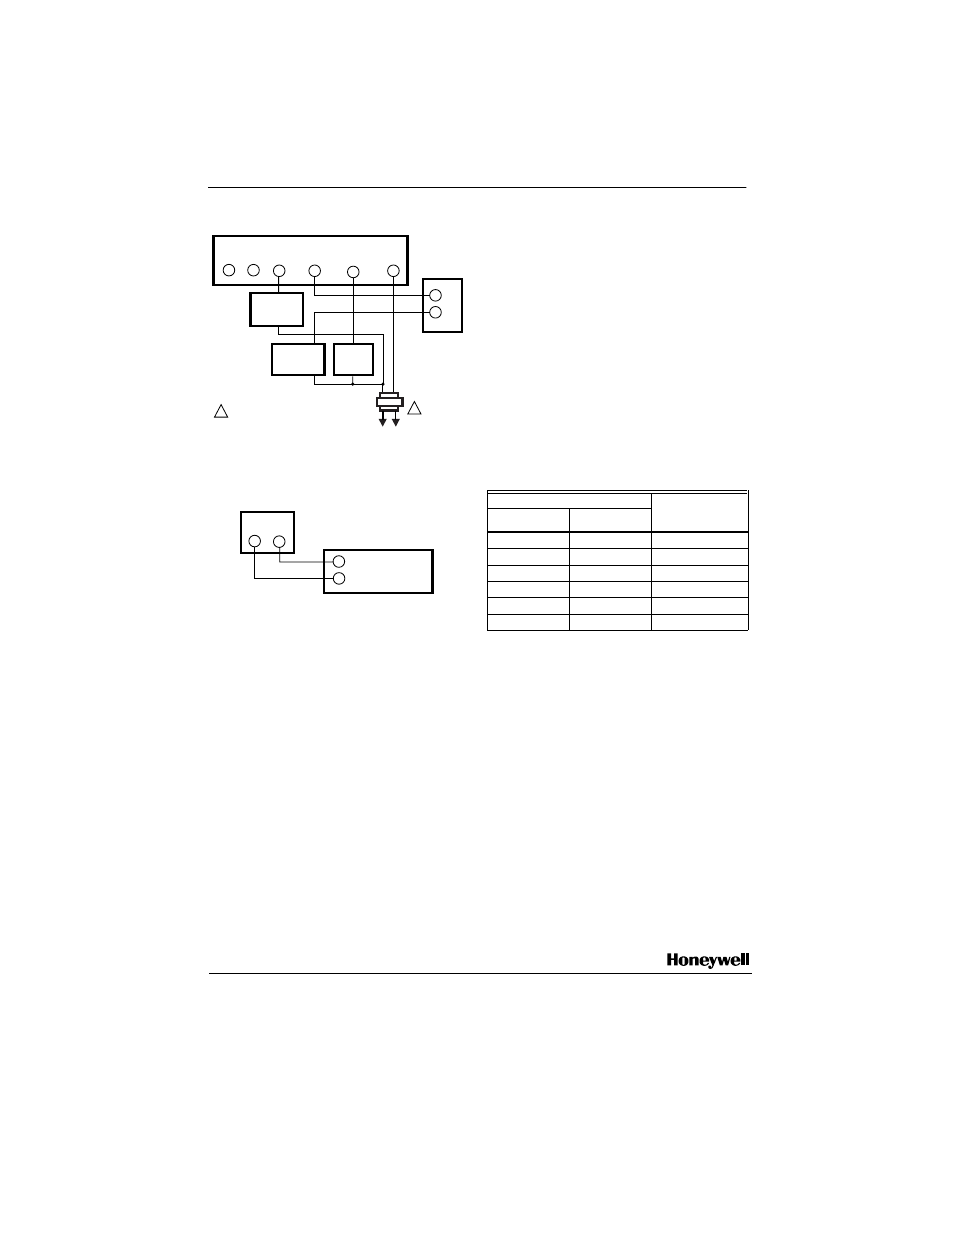 Adjustments Operation And Checkout Humidity Control Adjustment. Adjustments Operation And Checkout Humidity Control Adjustment Honeywell H8908b Humidistat User Manual Page 4. Wiring. York Dehumidifier Whole House Diagram At Scoala.co